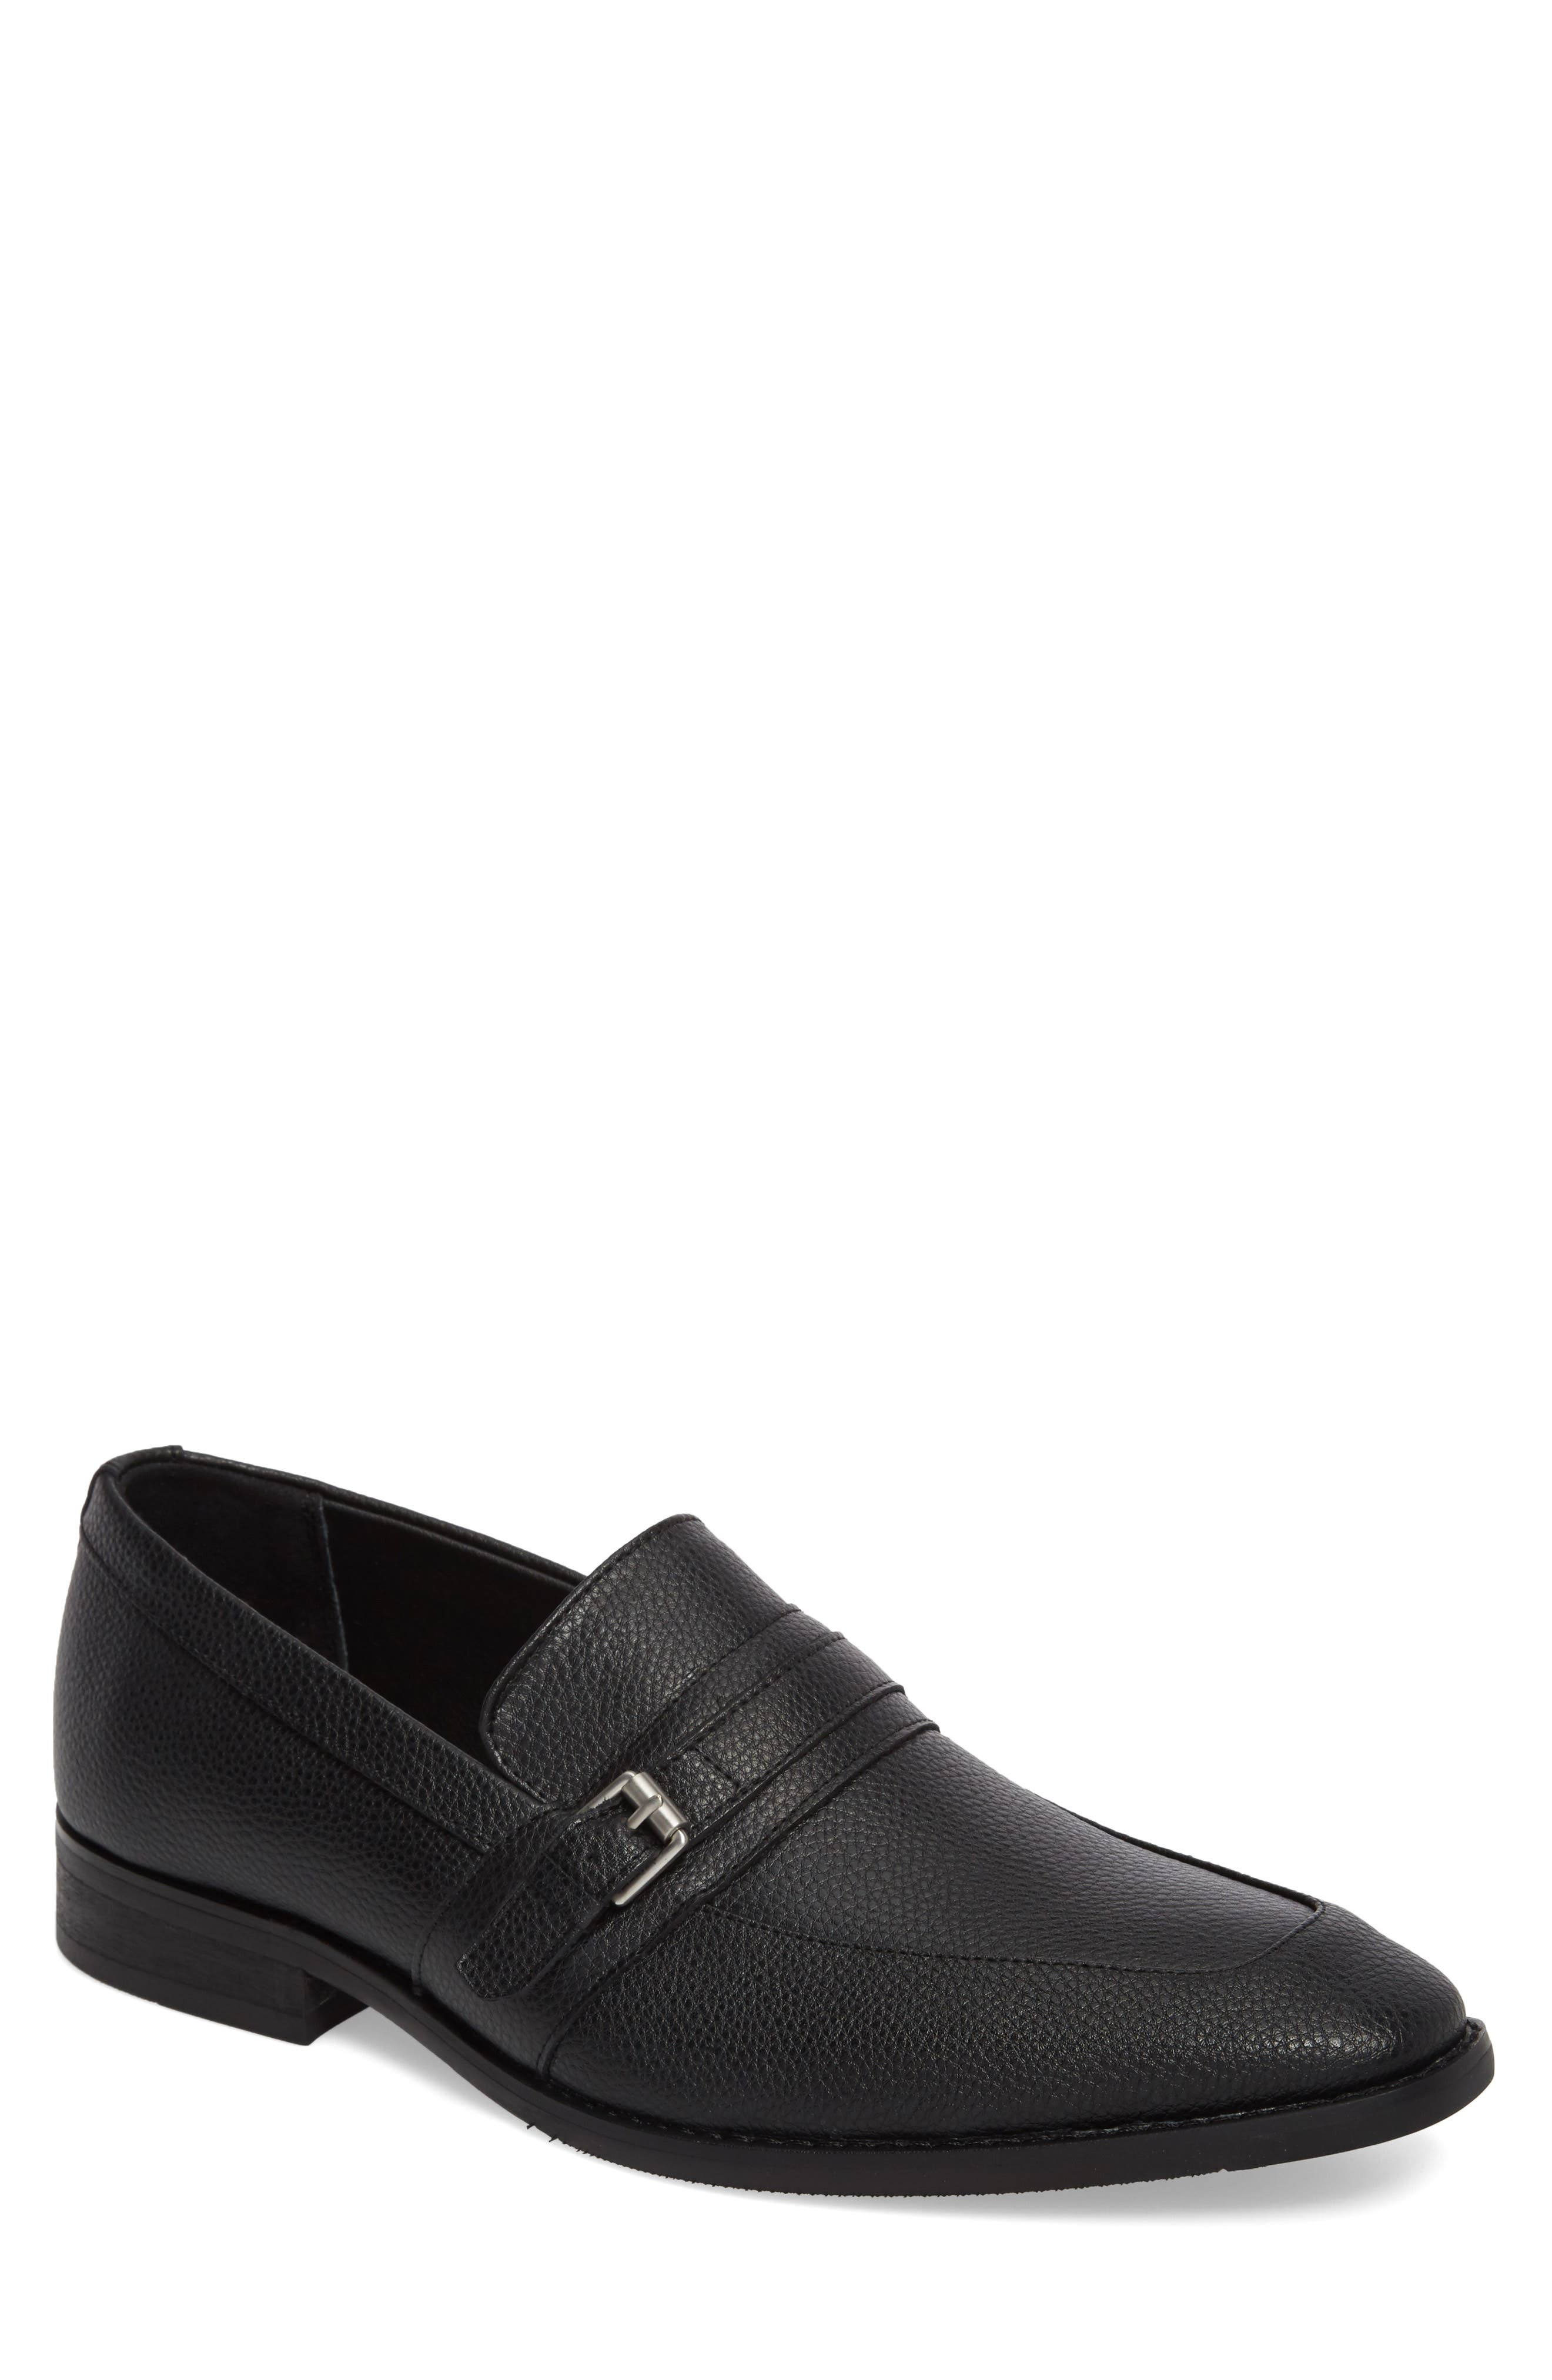 CALVIN KLEIN,                             Reyes Loafer,                             Main thumbnail 1, color,                             001